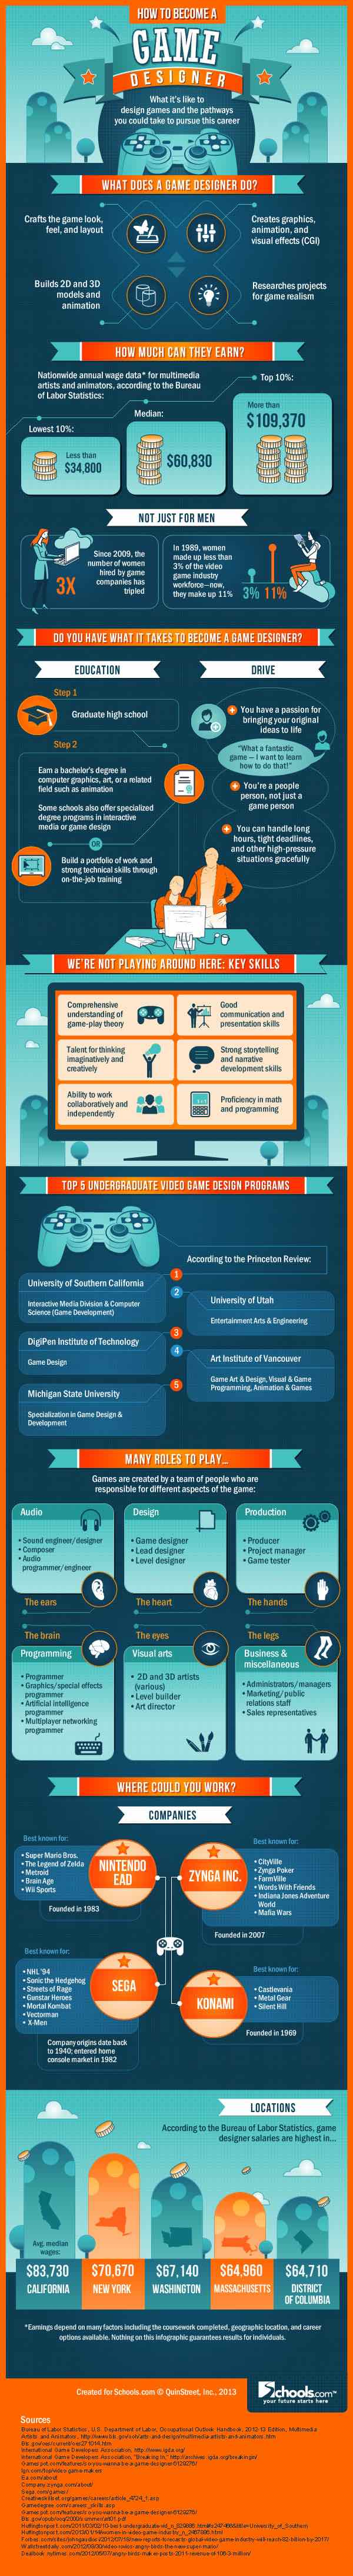 How To Become Game Developer And Designer, Earn Millions (2)